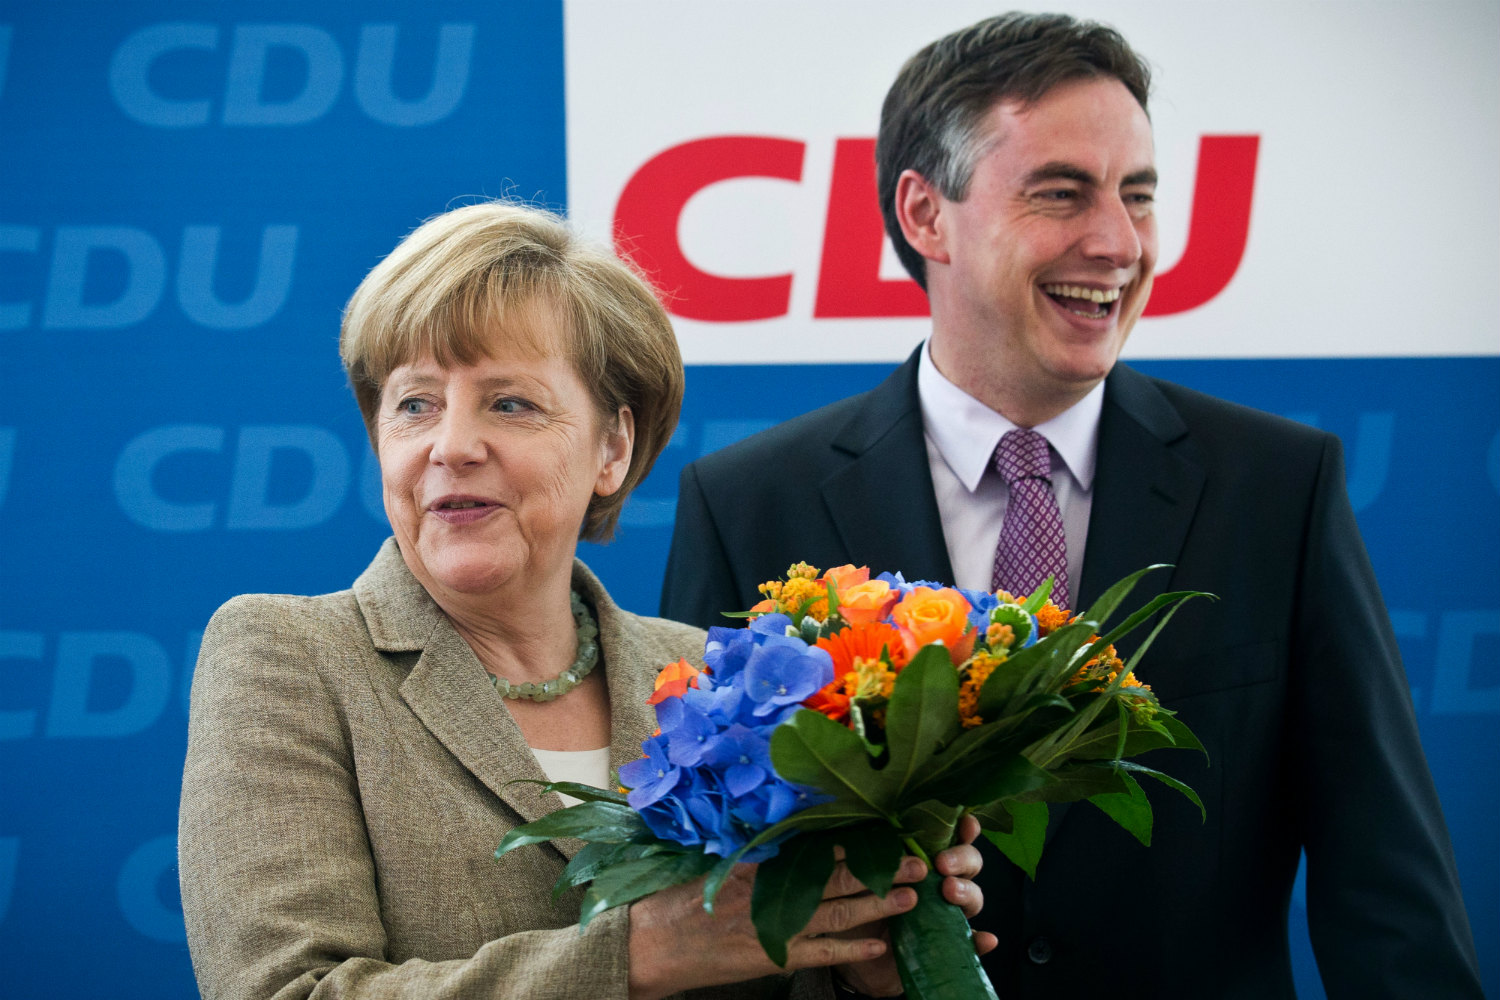 The Local: 'Merkel appreciates Feierabend': CDU Scot gives the inside scoop